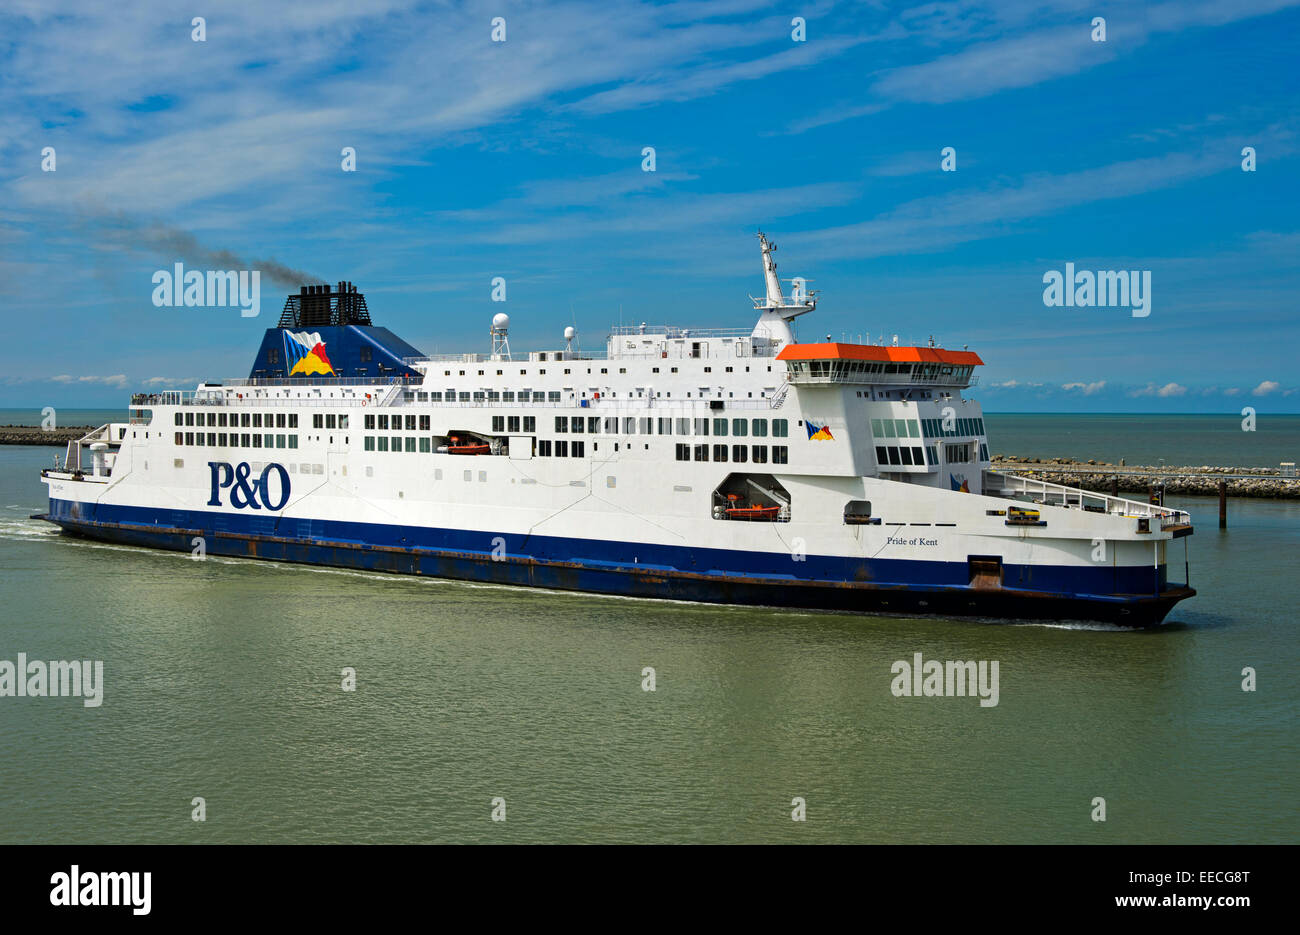 Cross-channel ferry Pride of Kent of P&O ferries approaches the port of Calais, France - Stock Image